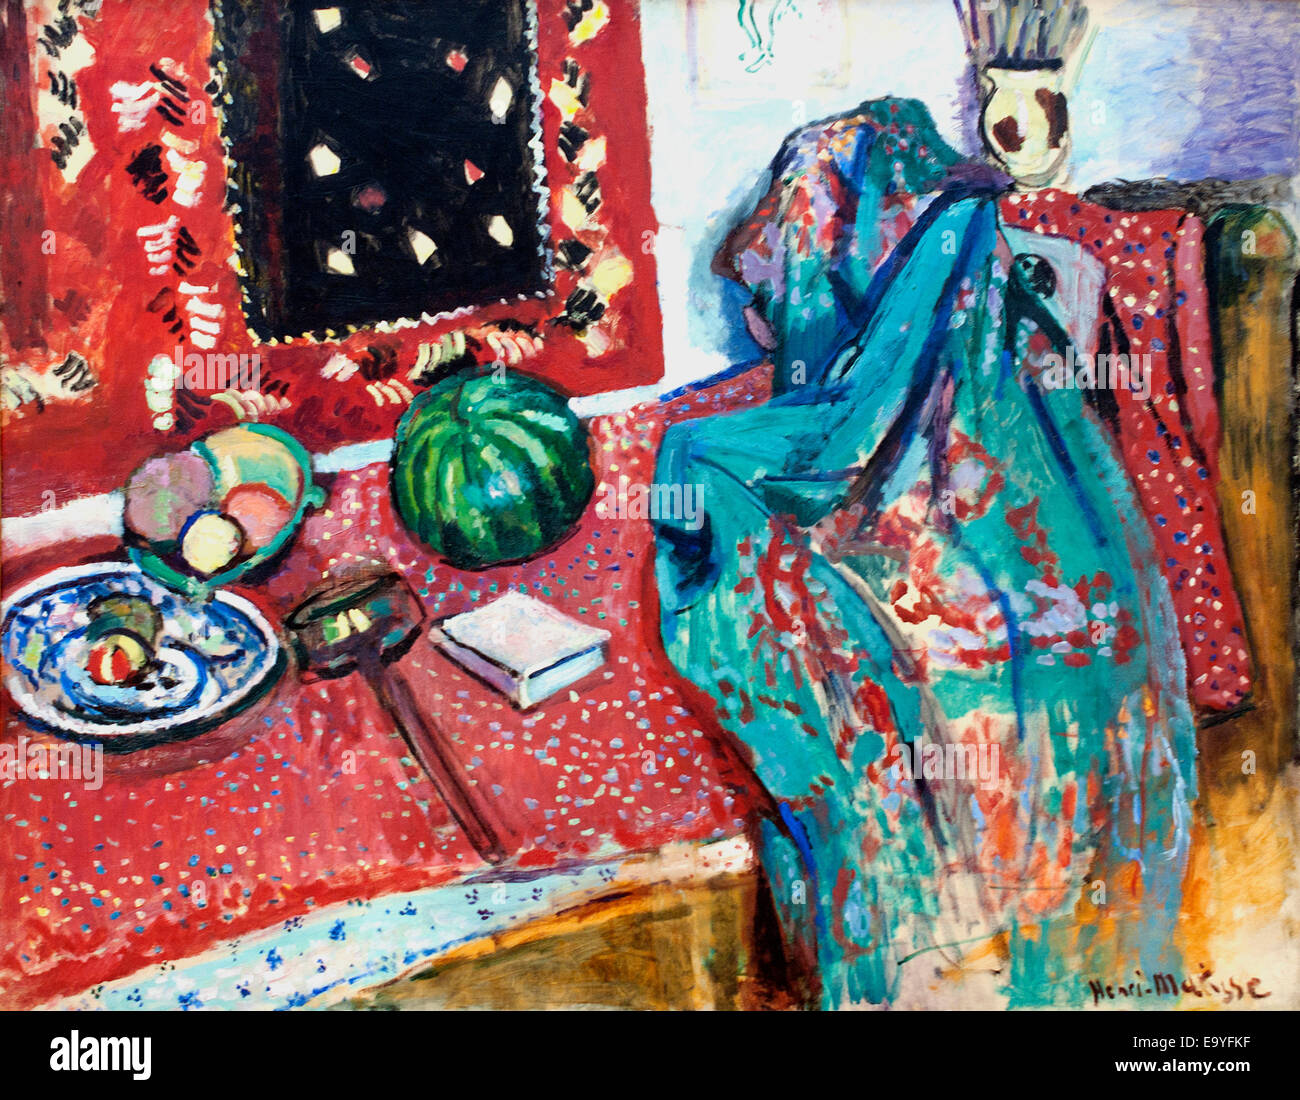 Les Tapis Rouge - The Red Carpet 1906 by  Henri Matisse France French Painter - Stock Image